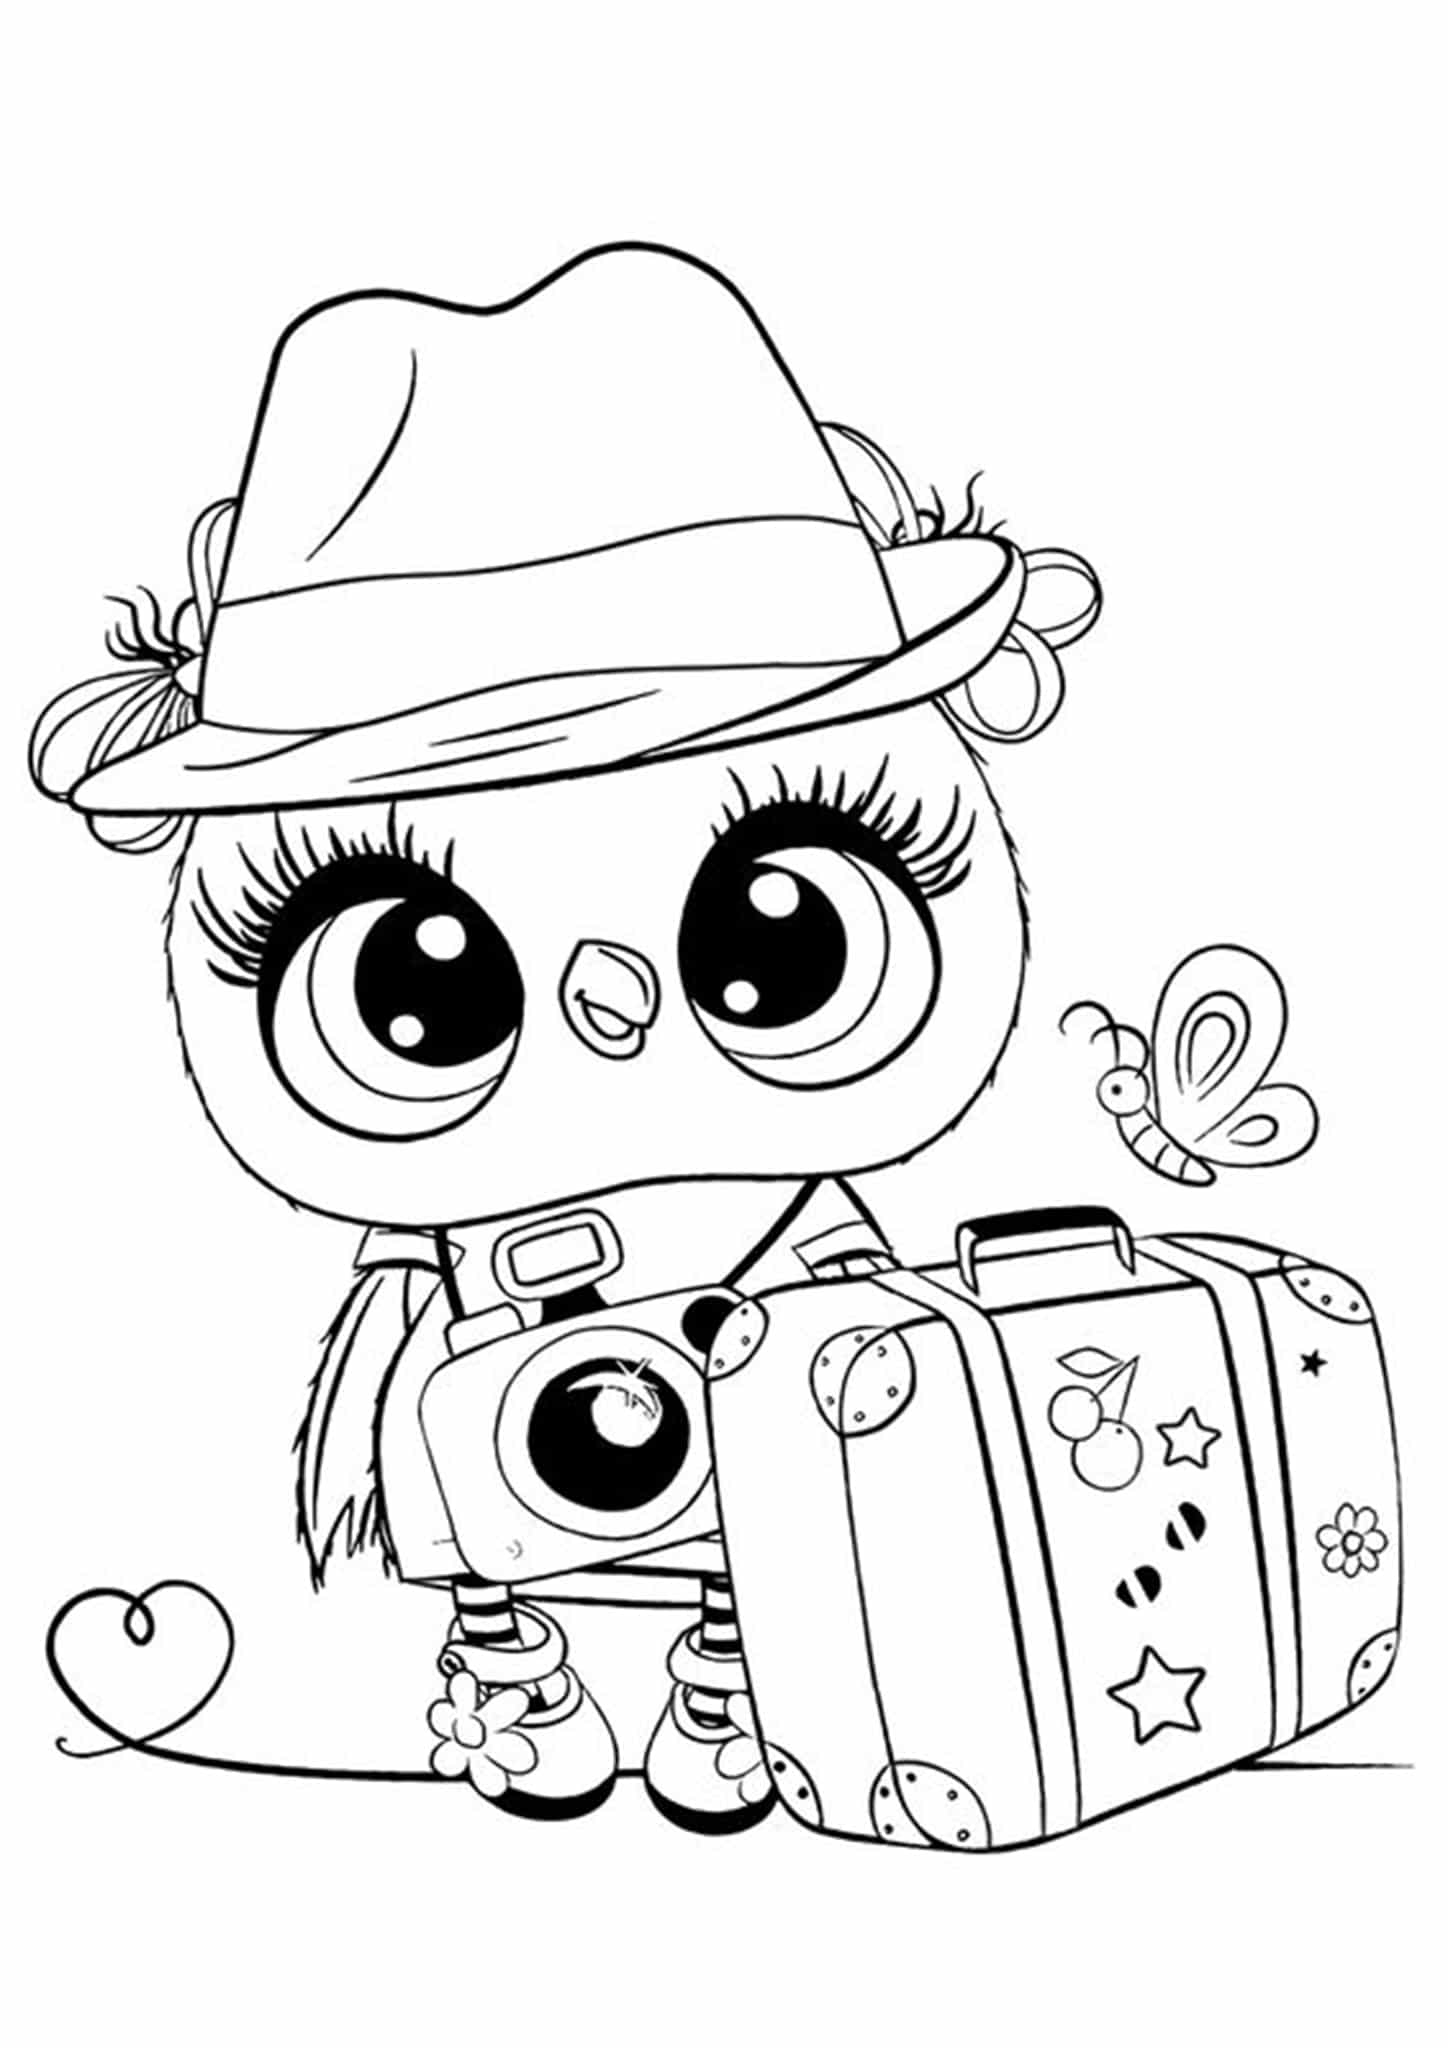 coloring for kids easy cute animal coloring pages best coloring pages for kids easy for coloring kids